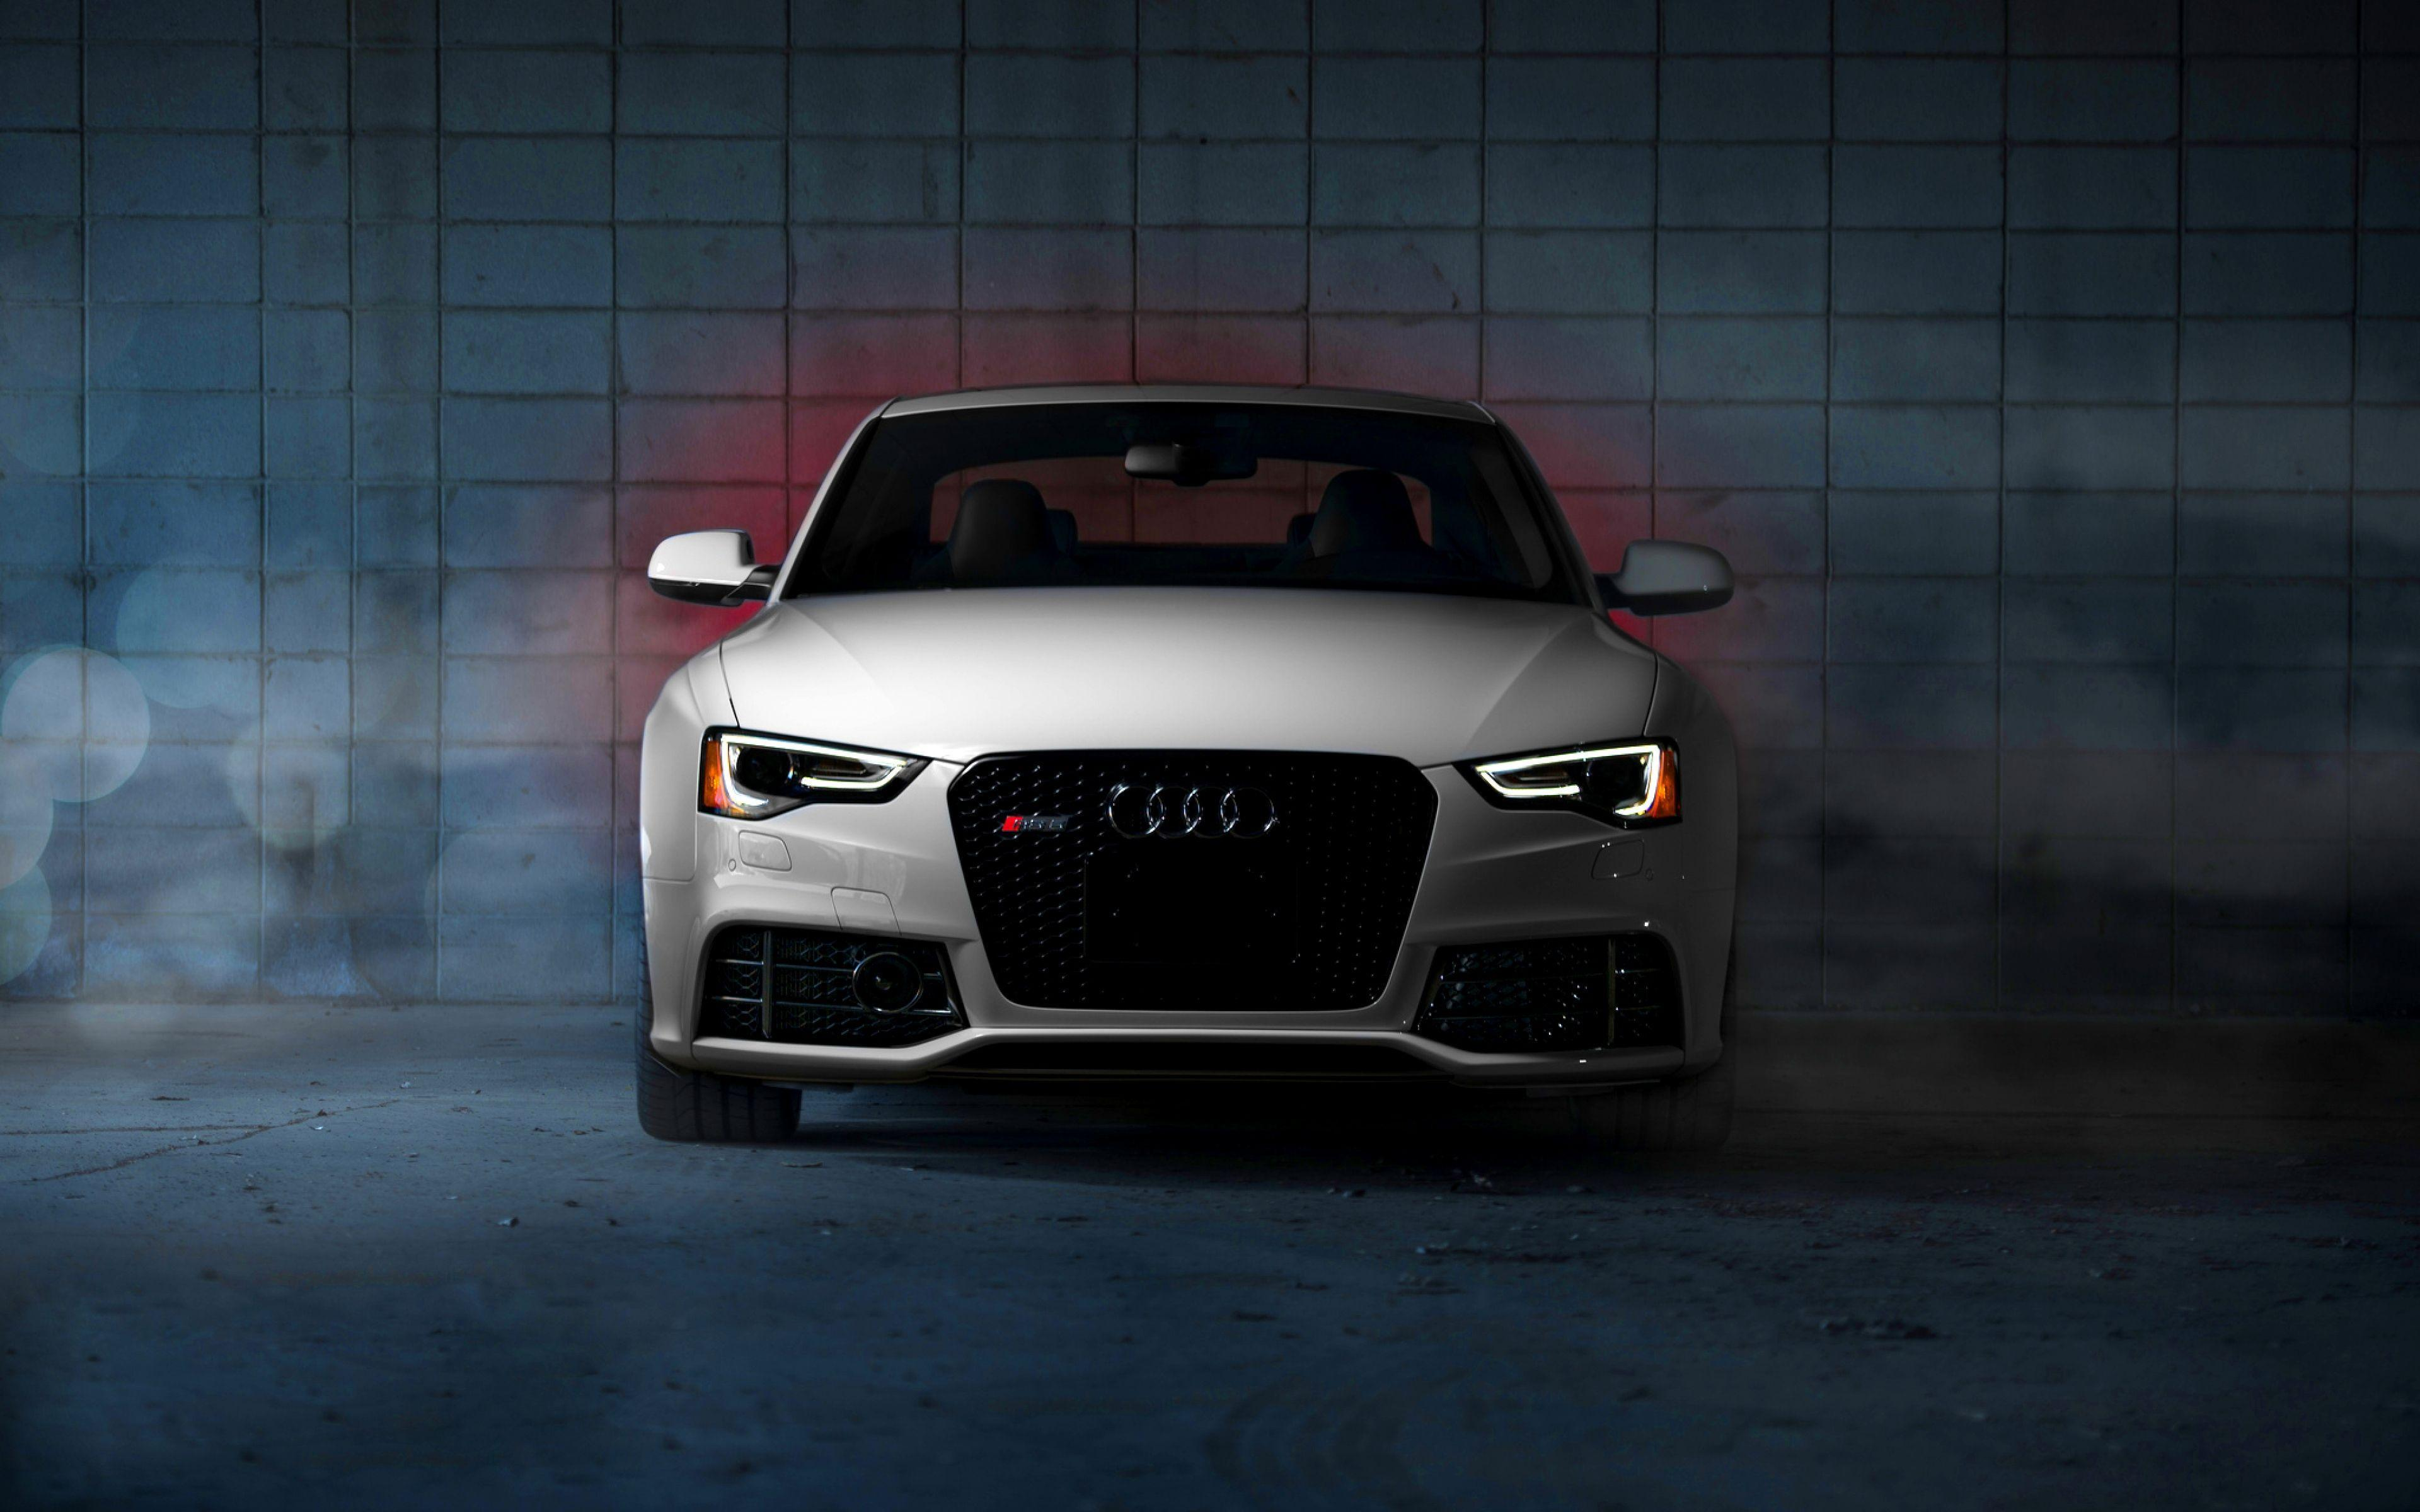 Ultra HD 4K Audi Wallpapers HD, Desktop Backgrounds 3840x2400 ...